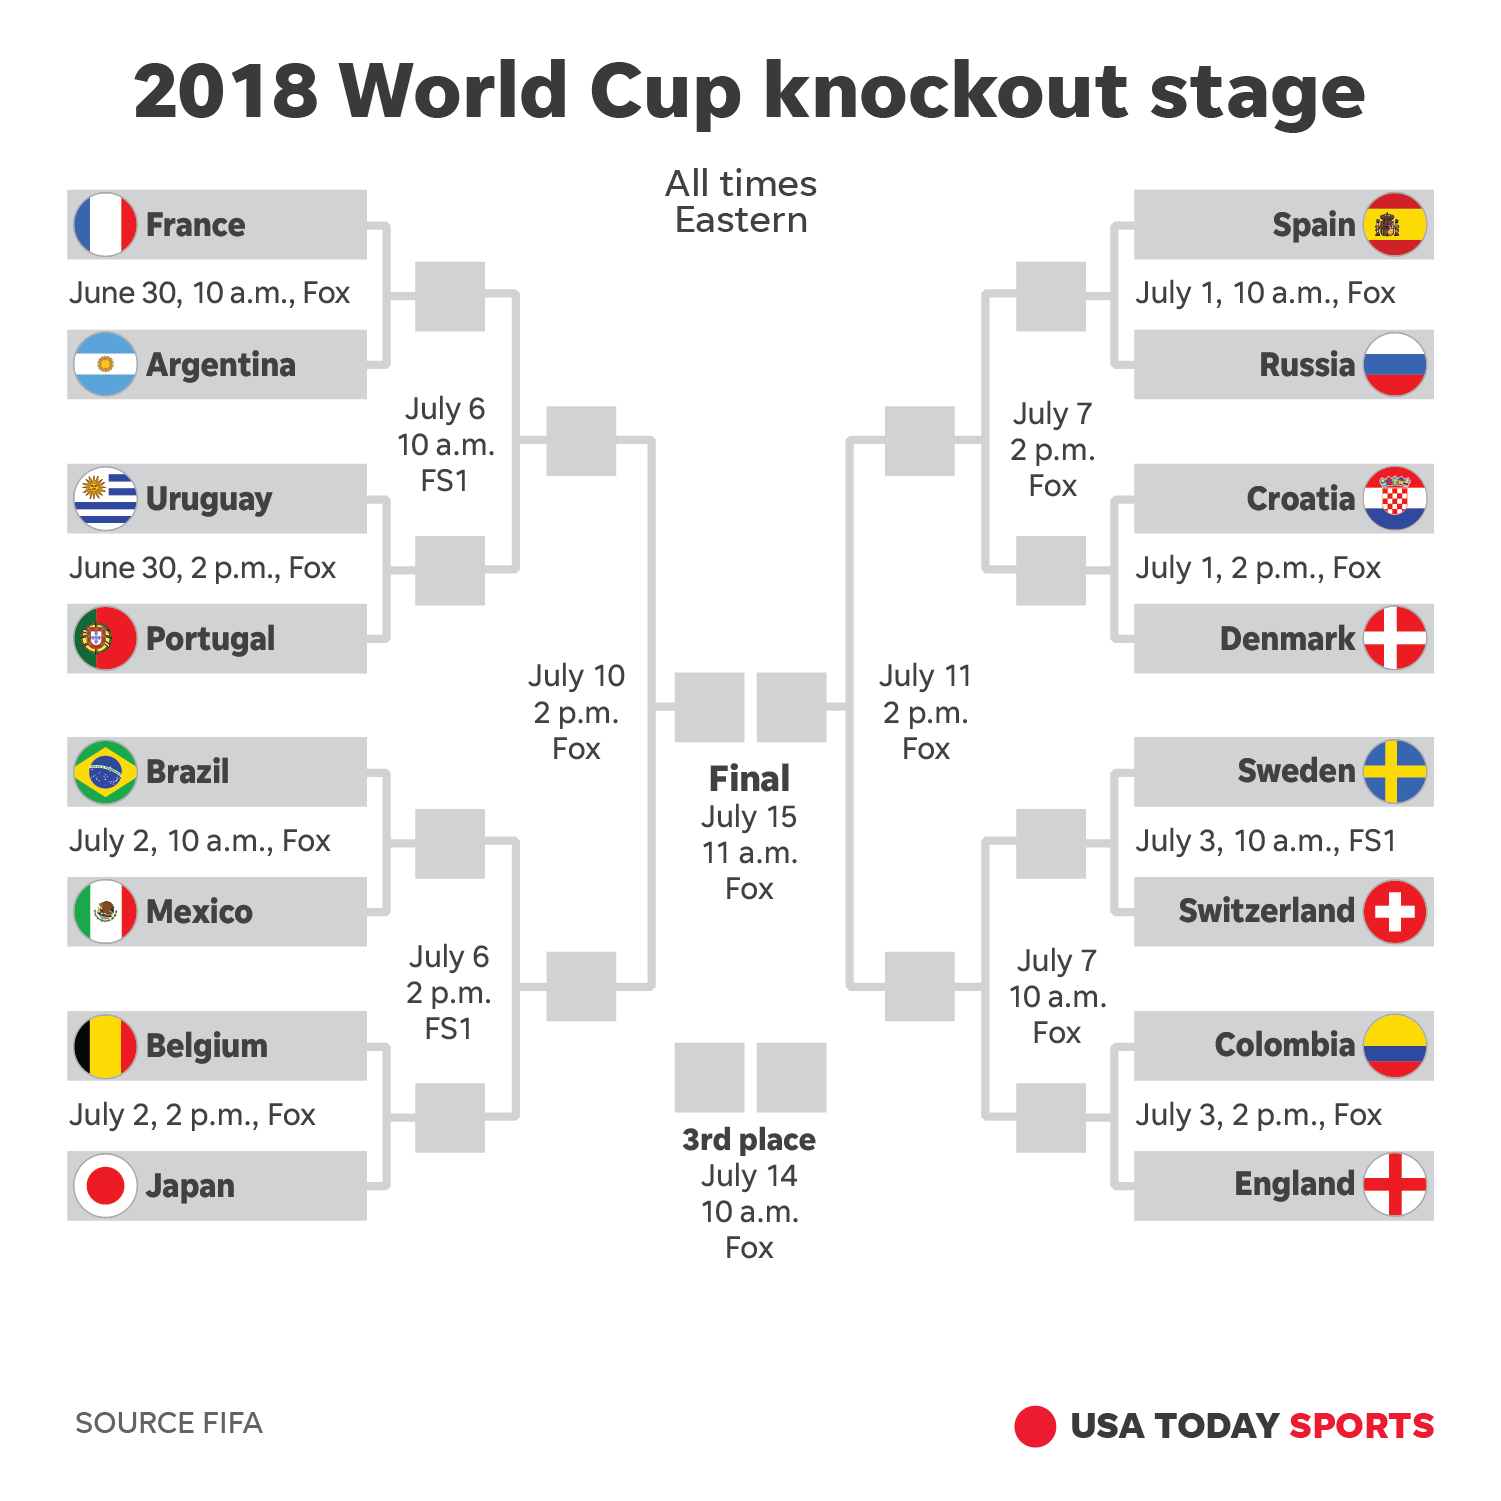 image relating to World Cup Bracket Printable referred to as Worldwide Cup knockout level bracket that is printable